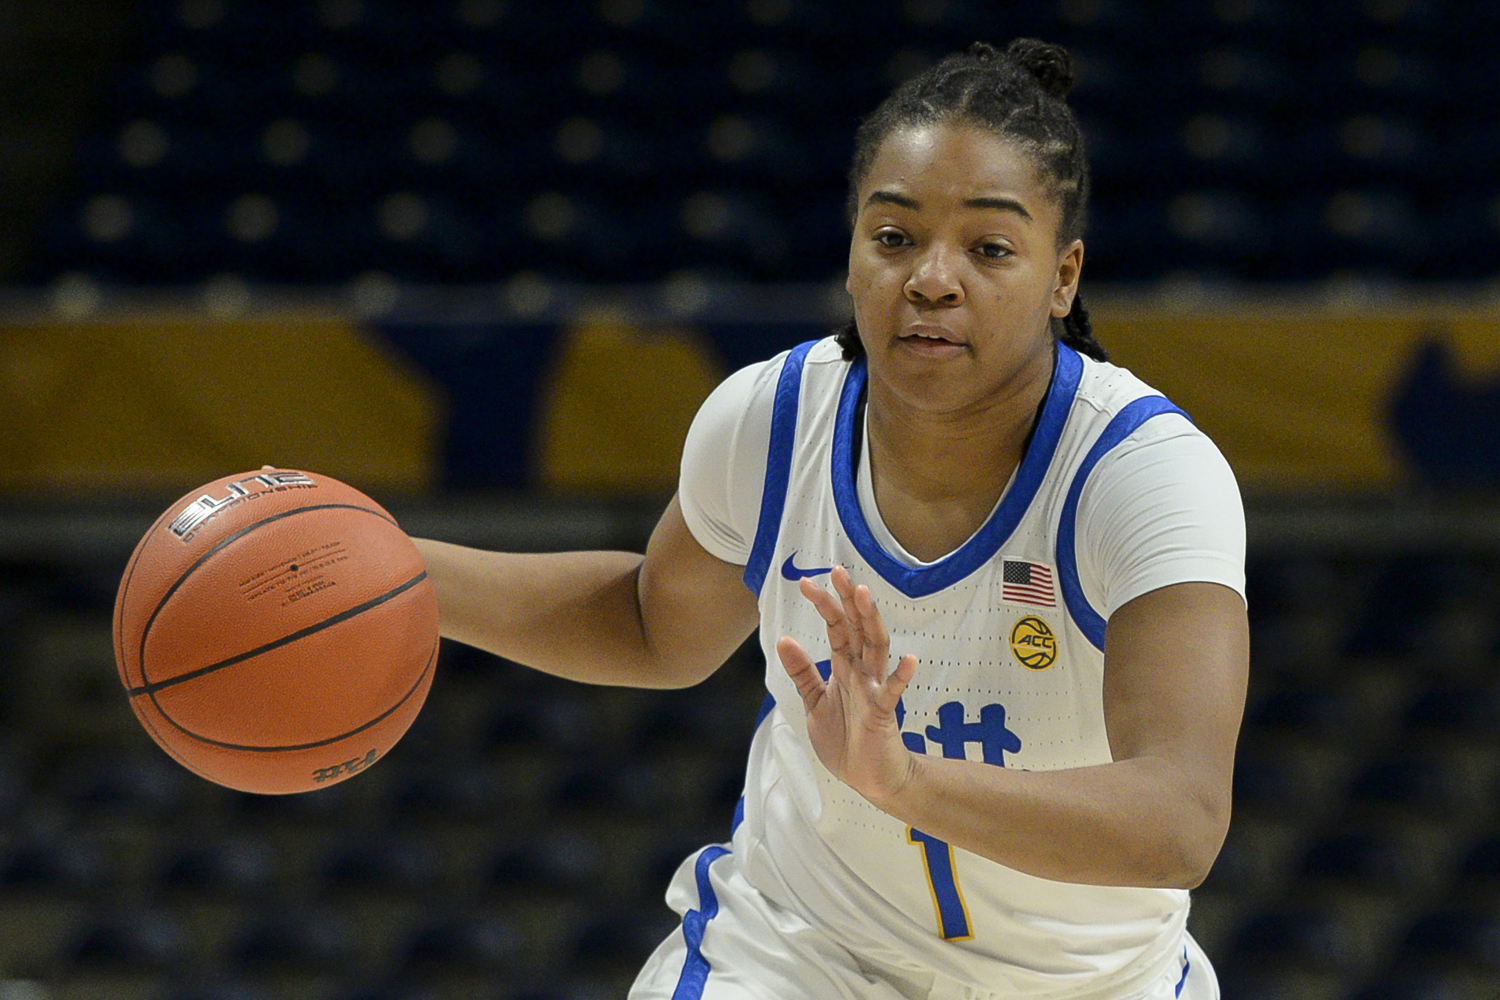 First-year guard Dayshanette Harris (1) accounted for 26 of Pitt's points during the Panthers' 78-73 loss to the Nittany Lions.